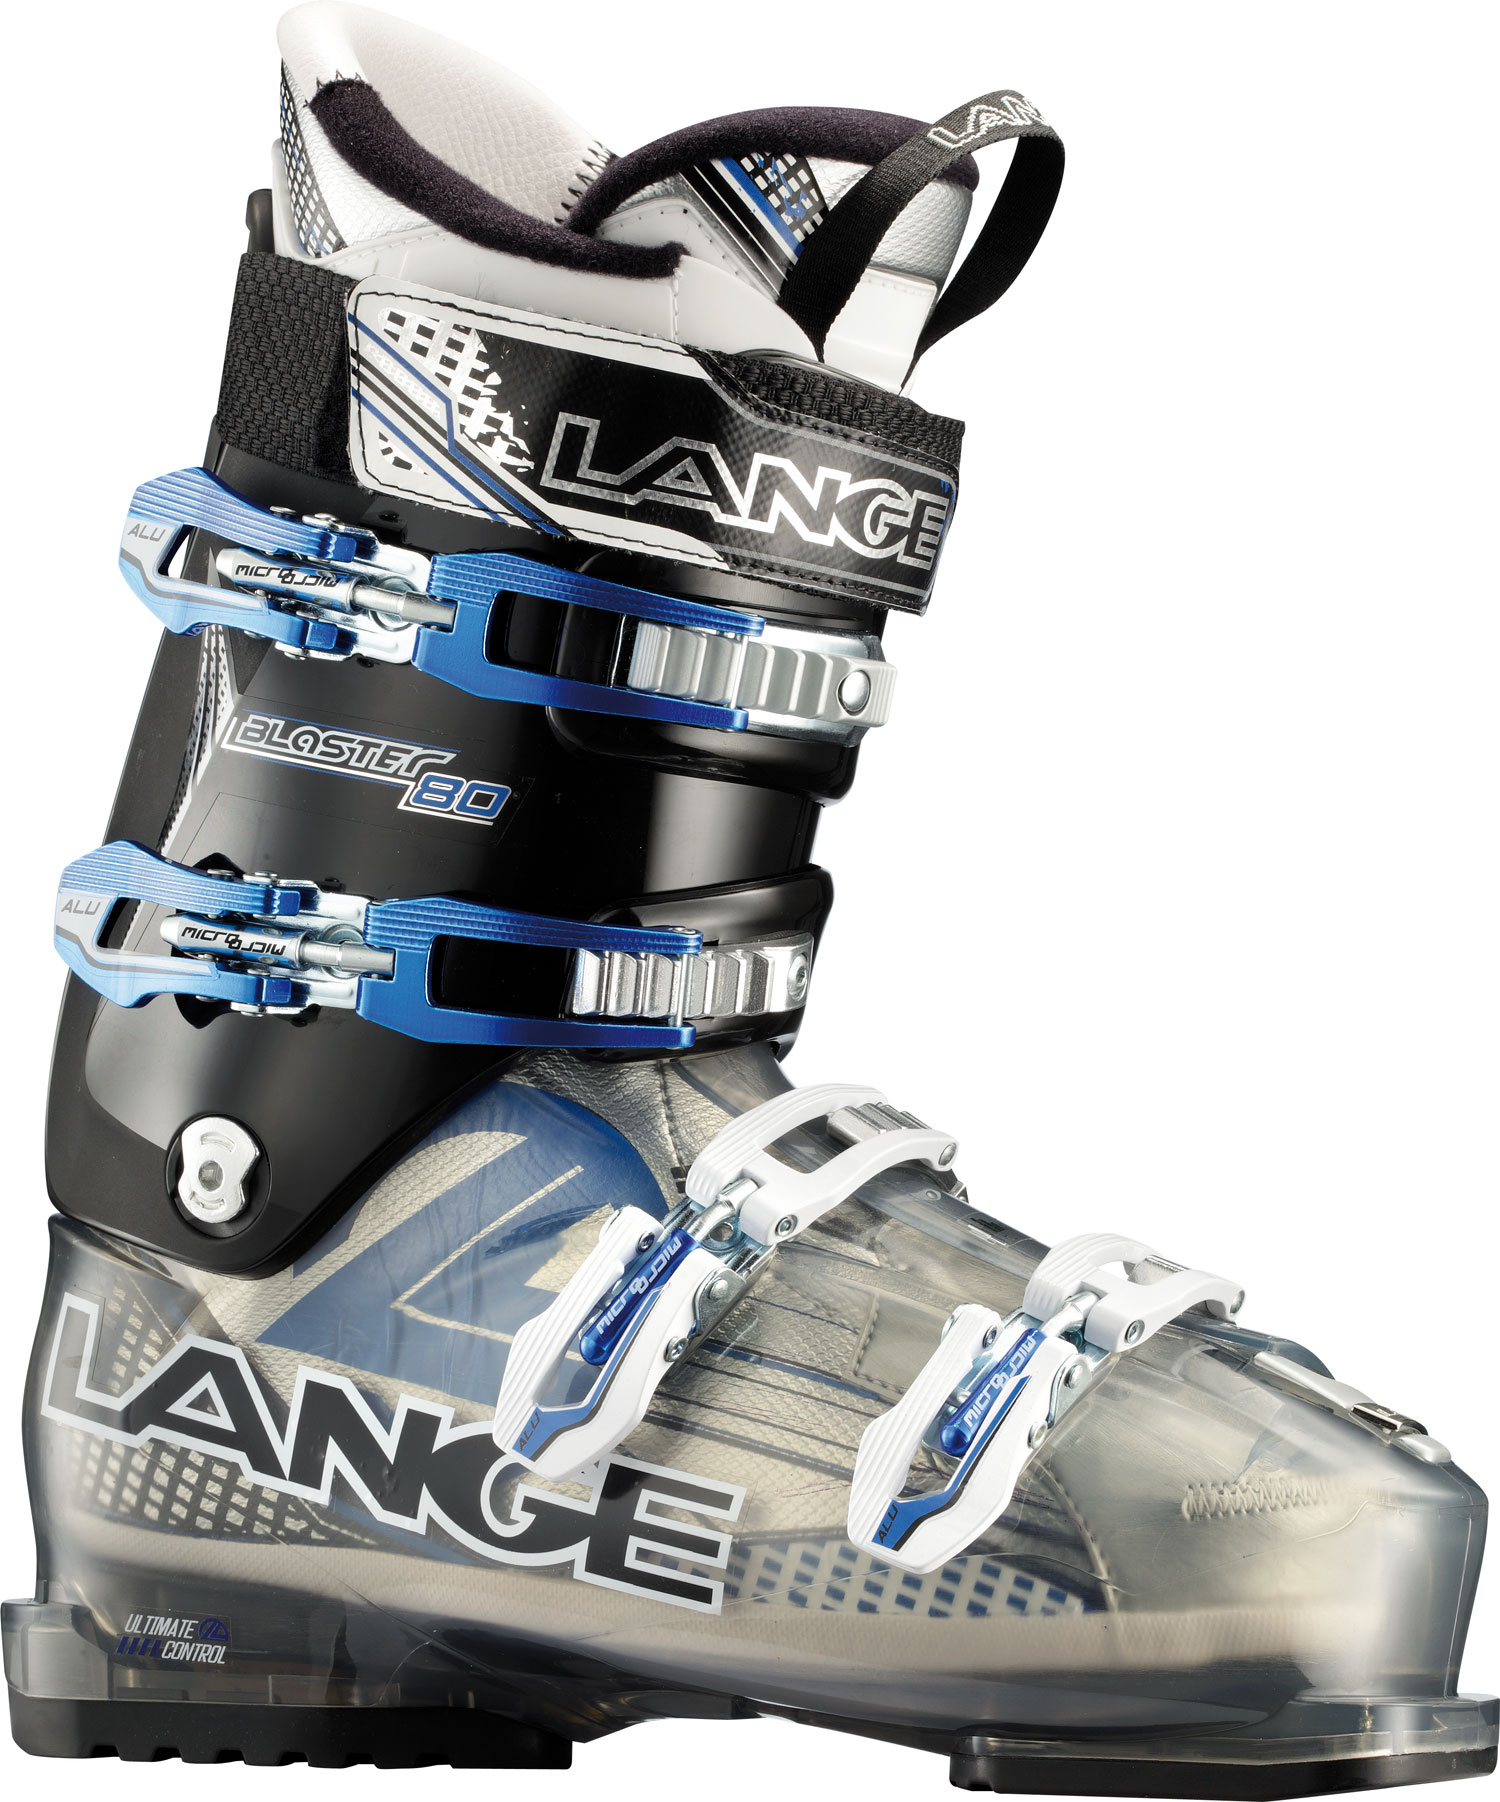 Ski Blaster boots deliver a unique blend of all-day comfort and all-mountain performance. Lange's Control Fit, 102mm last and easy entry/exit provides enhanced comfort and warmth. The easy-to-use ski/hike feature and Ultra-Grip replaceable soles provide increased comfort and traction for quick hikes or extended apres ski. Meanwhile the narrower, more articulated heel pocket and modern and efficient stance provides exceptional lateral quickness and downhill performance simply not found in other 102mm boots.Key Features of the Lange Blaster 80 Ski Boots: Last Width 102mm Flex Index 80 Liner Control Fit Canting +/- 1,5 degree Power Strap 35mm Shell Material Polyether Cuff Material Polyolefin Soles Polyurethane Grip - $244.95